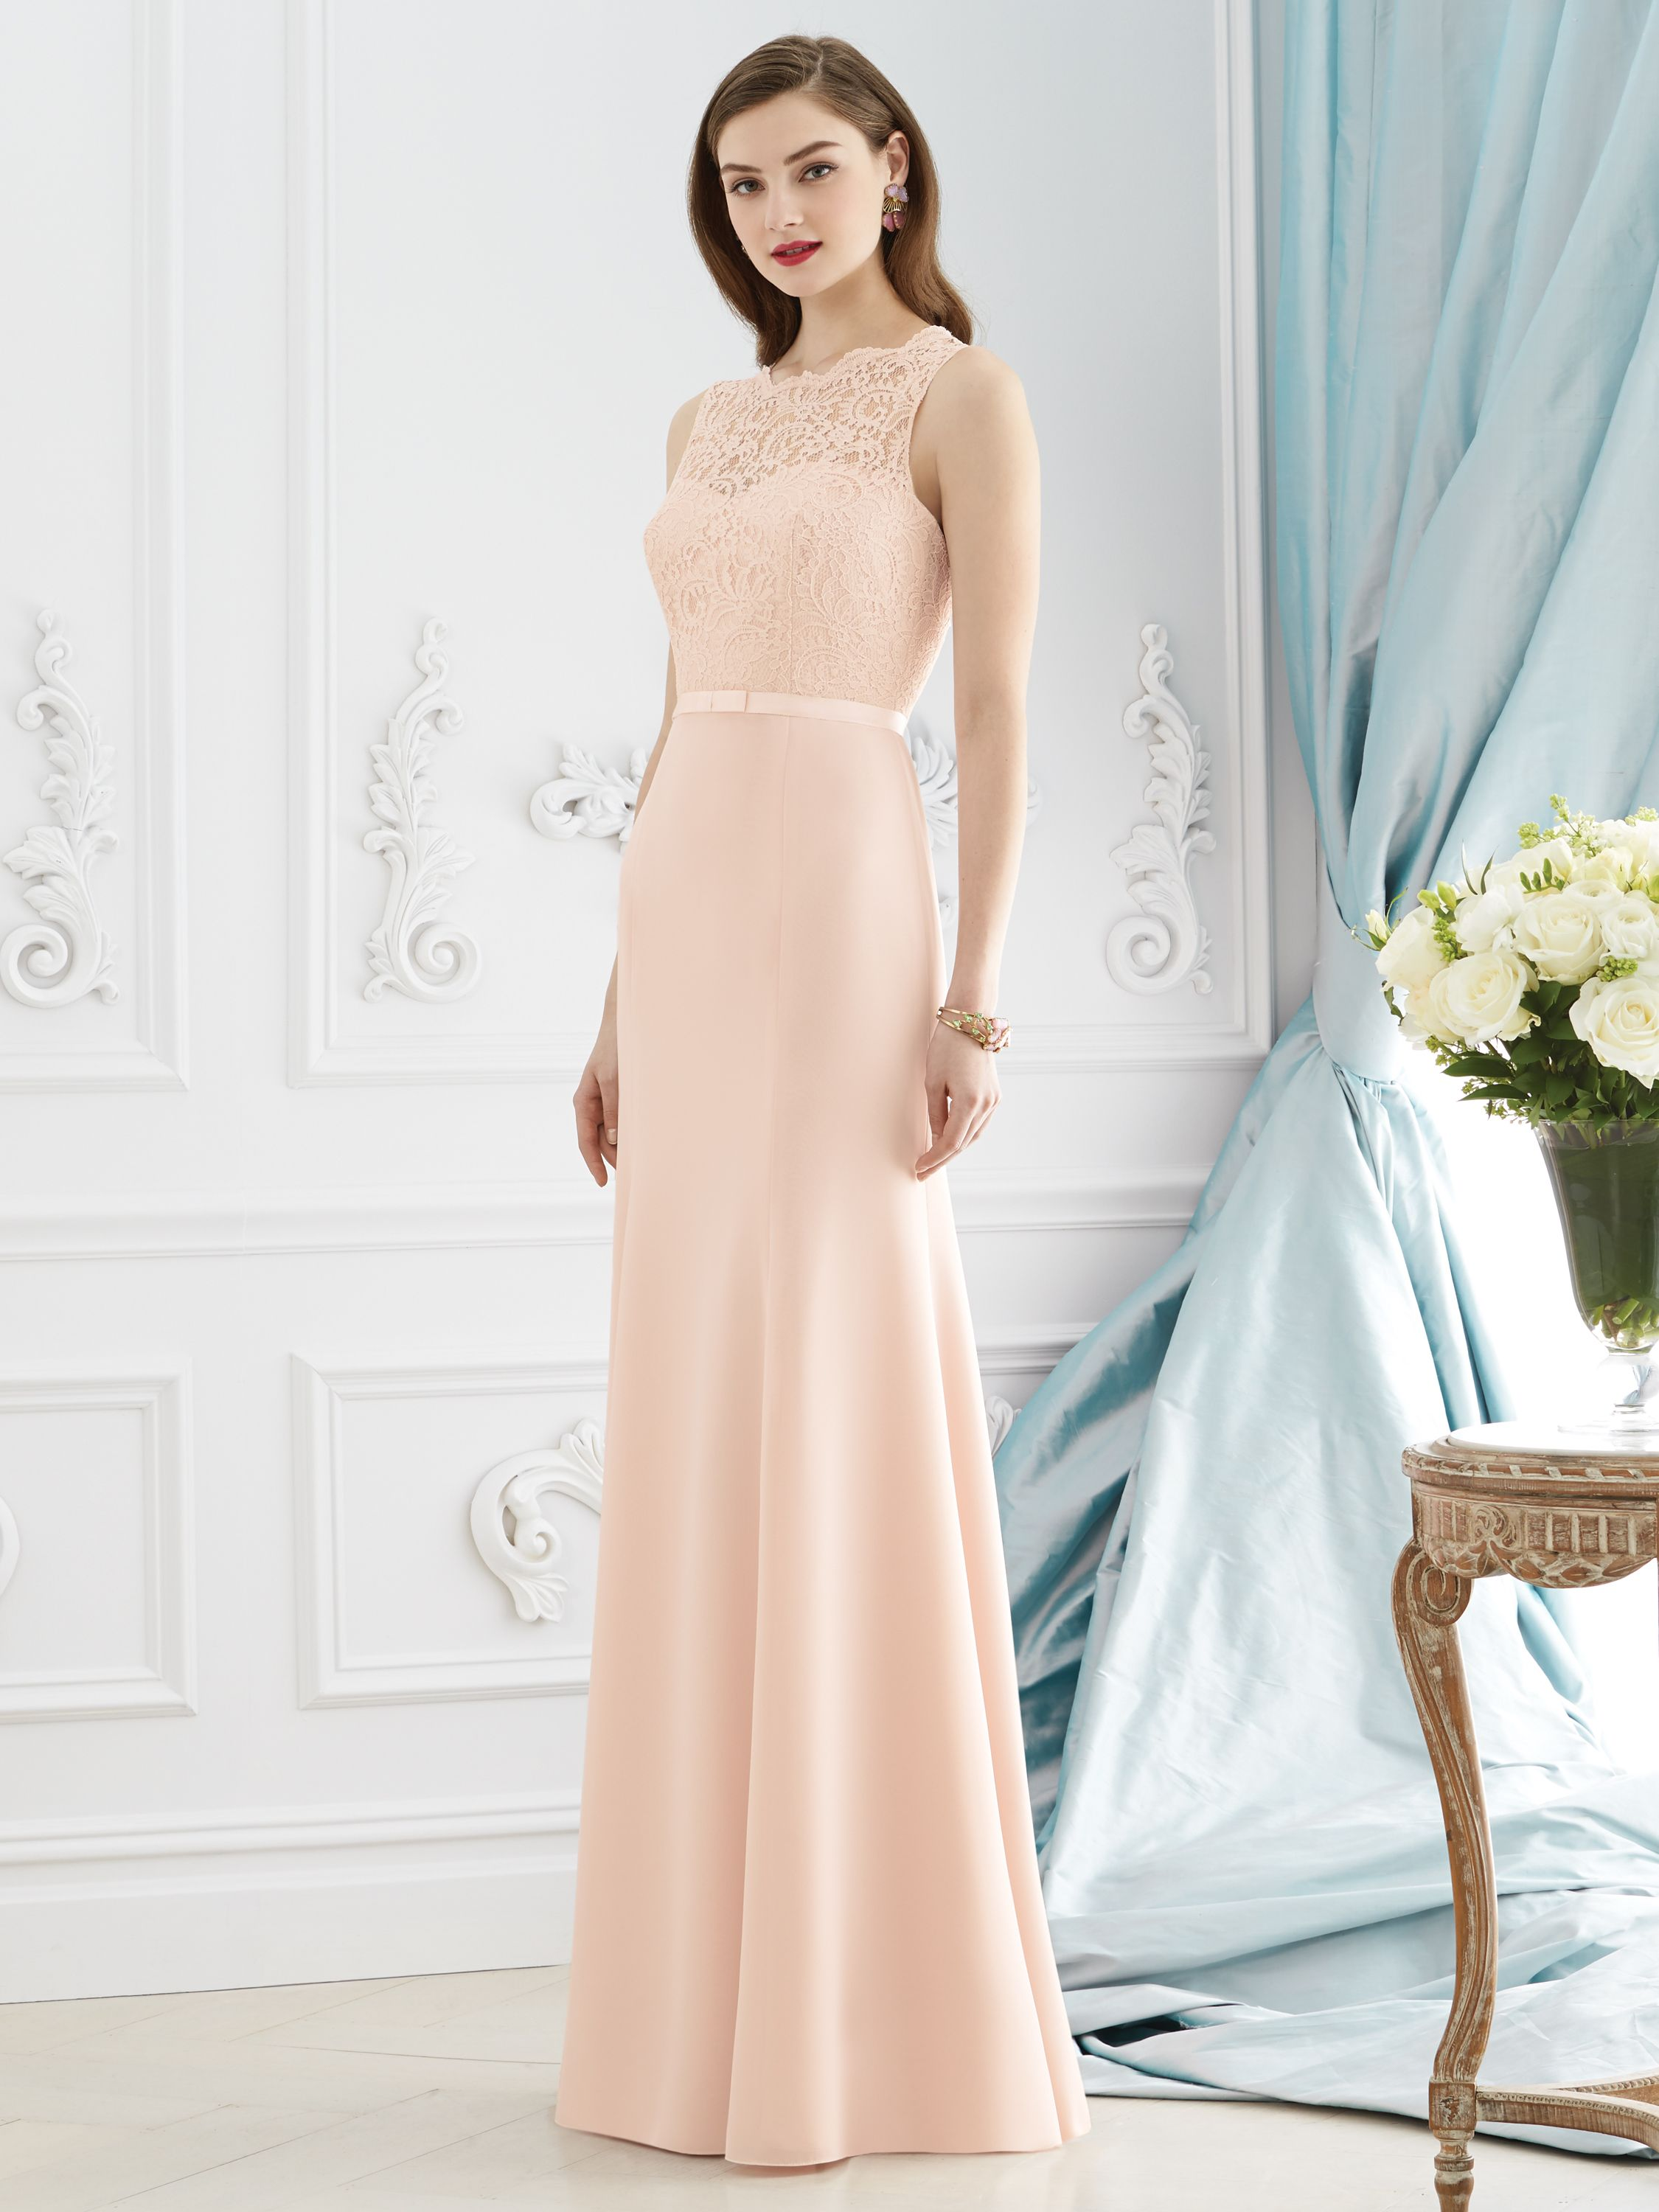 Dessy 2945 dessy pinterest wedding and weddings the very best in bridesmaid dresses located between york selby exclusive boutique store dedicated to your bridesmaids ombrellifo Image collections